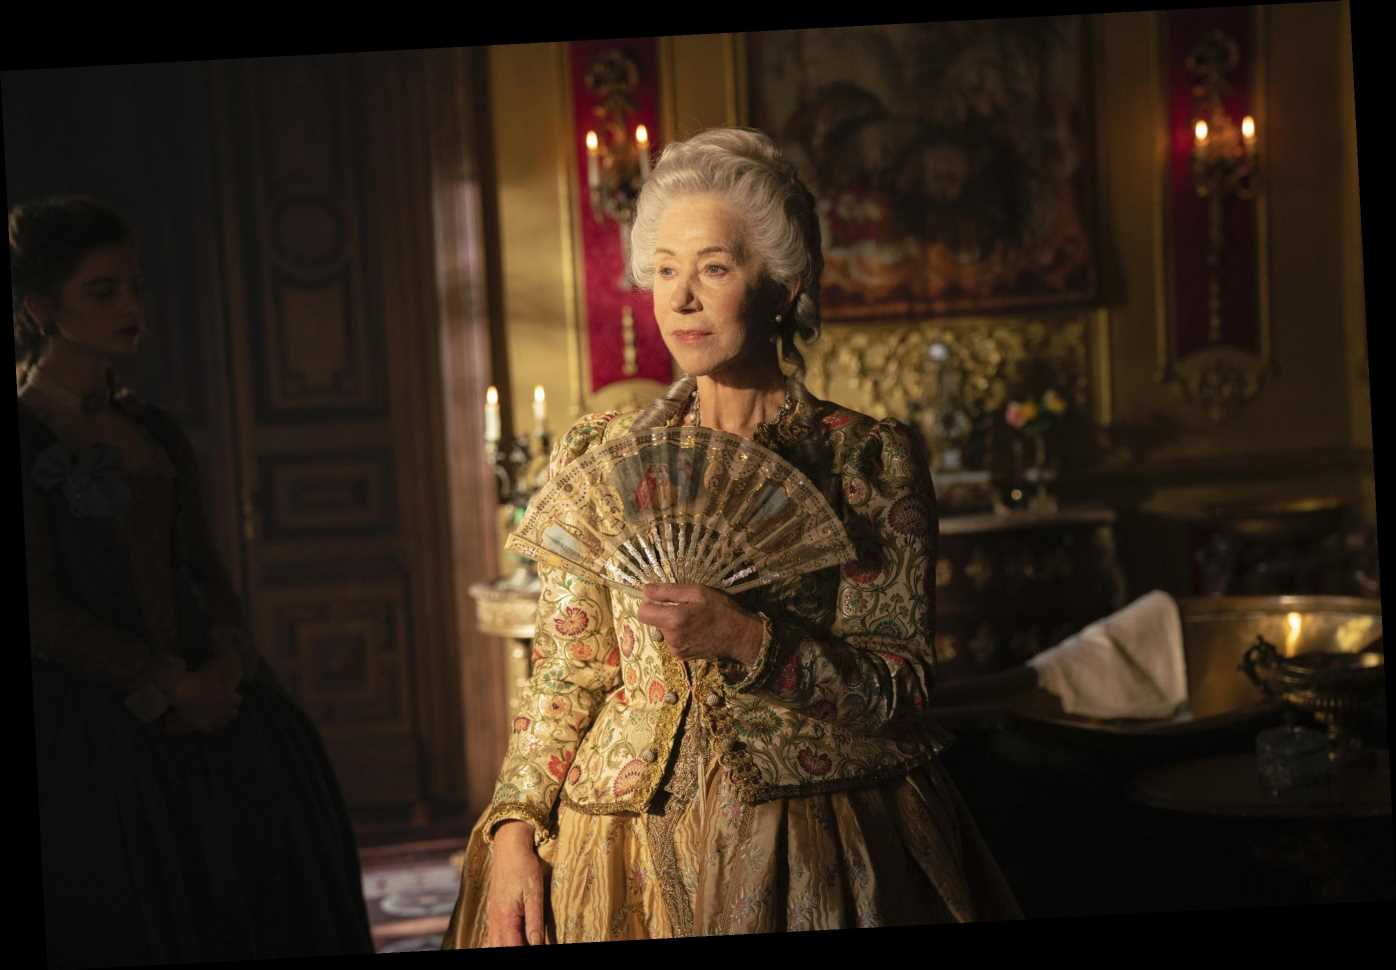 Love HBO's 'Catherine the Great'? There's more to learn about the Russian empress